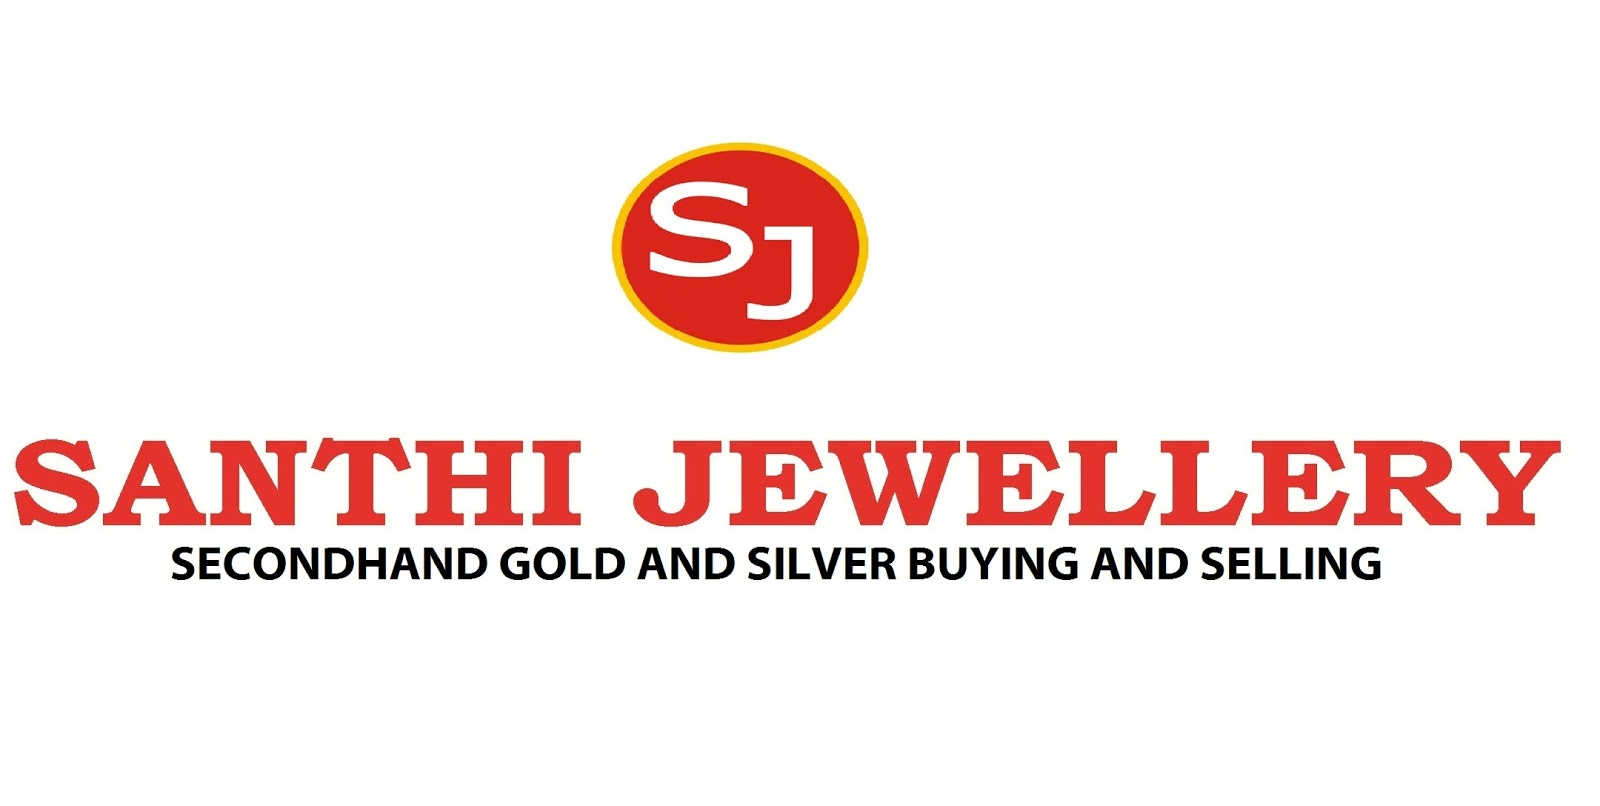 SECONDHAND GOLD BUYER IN CHENNAI (santhi jewellery)